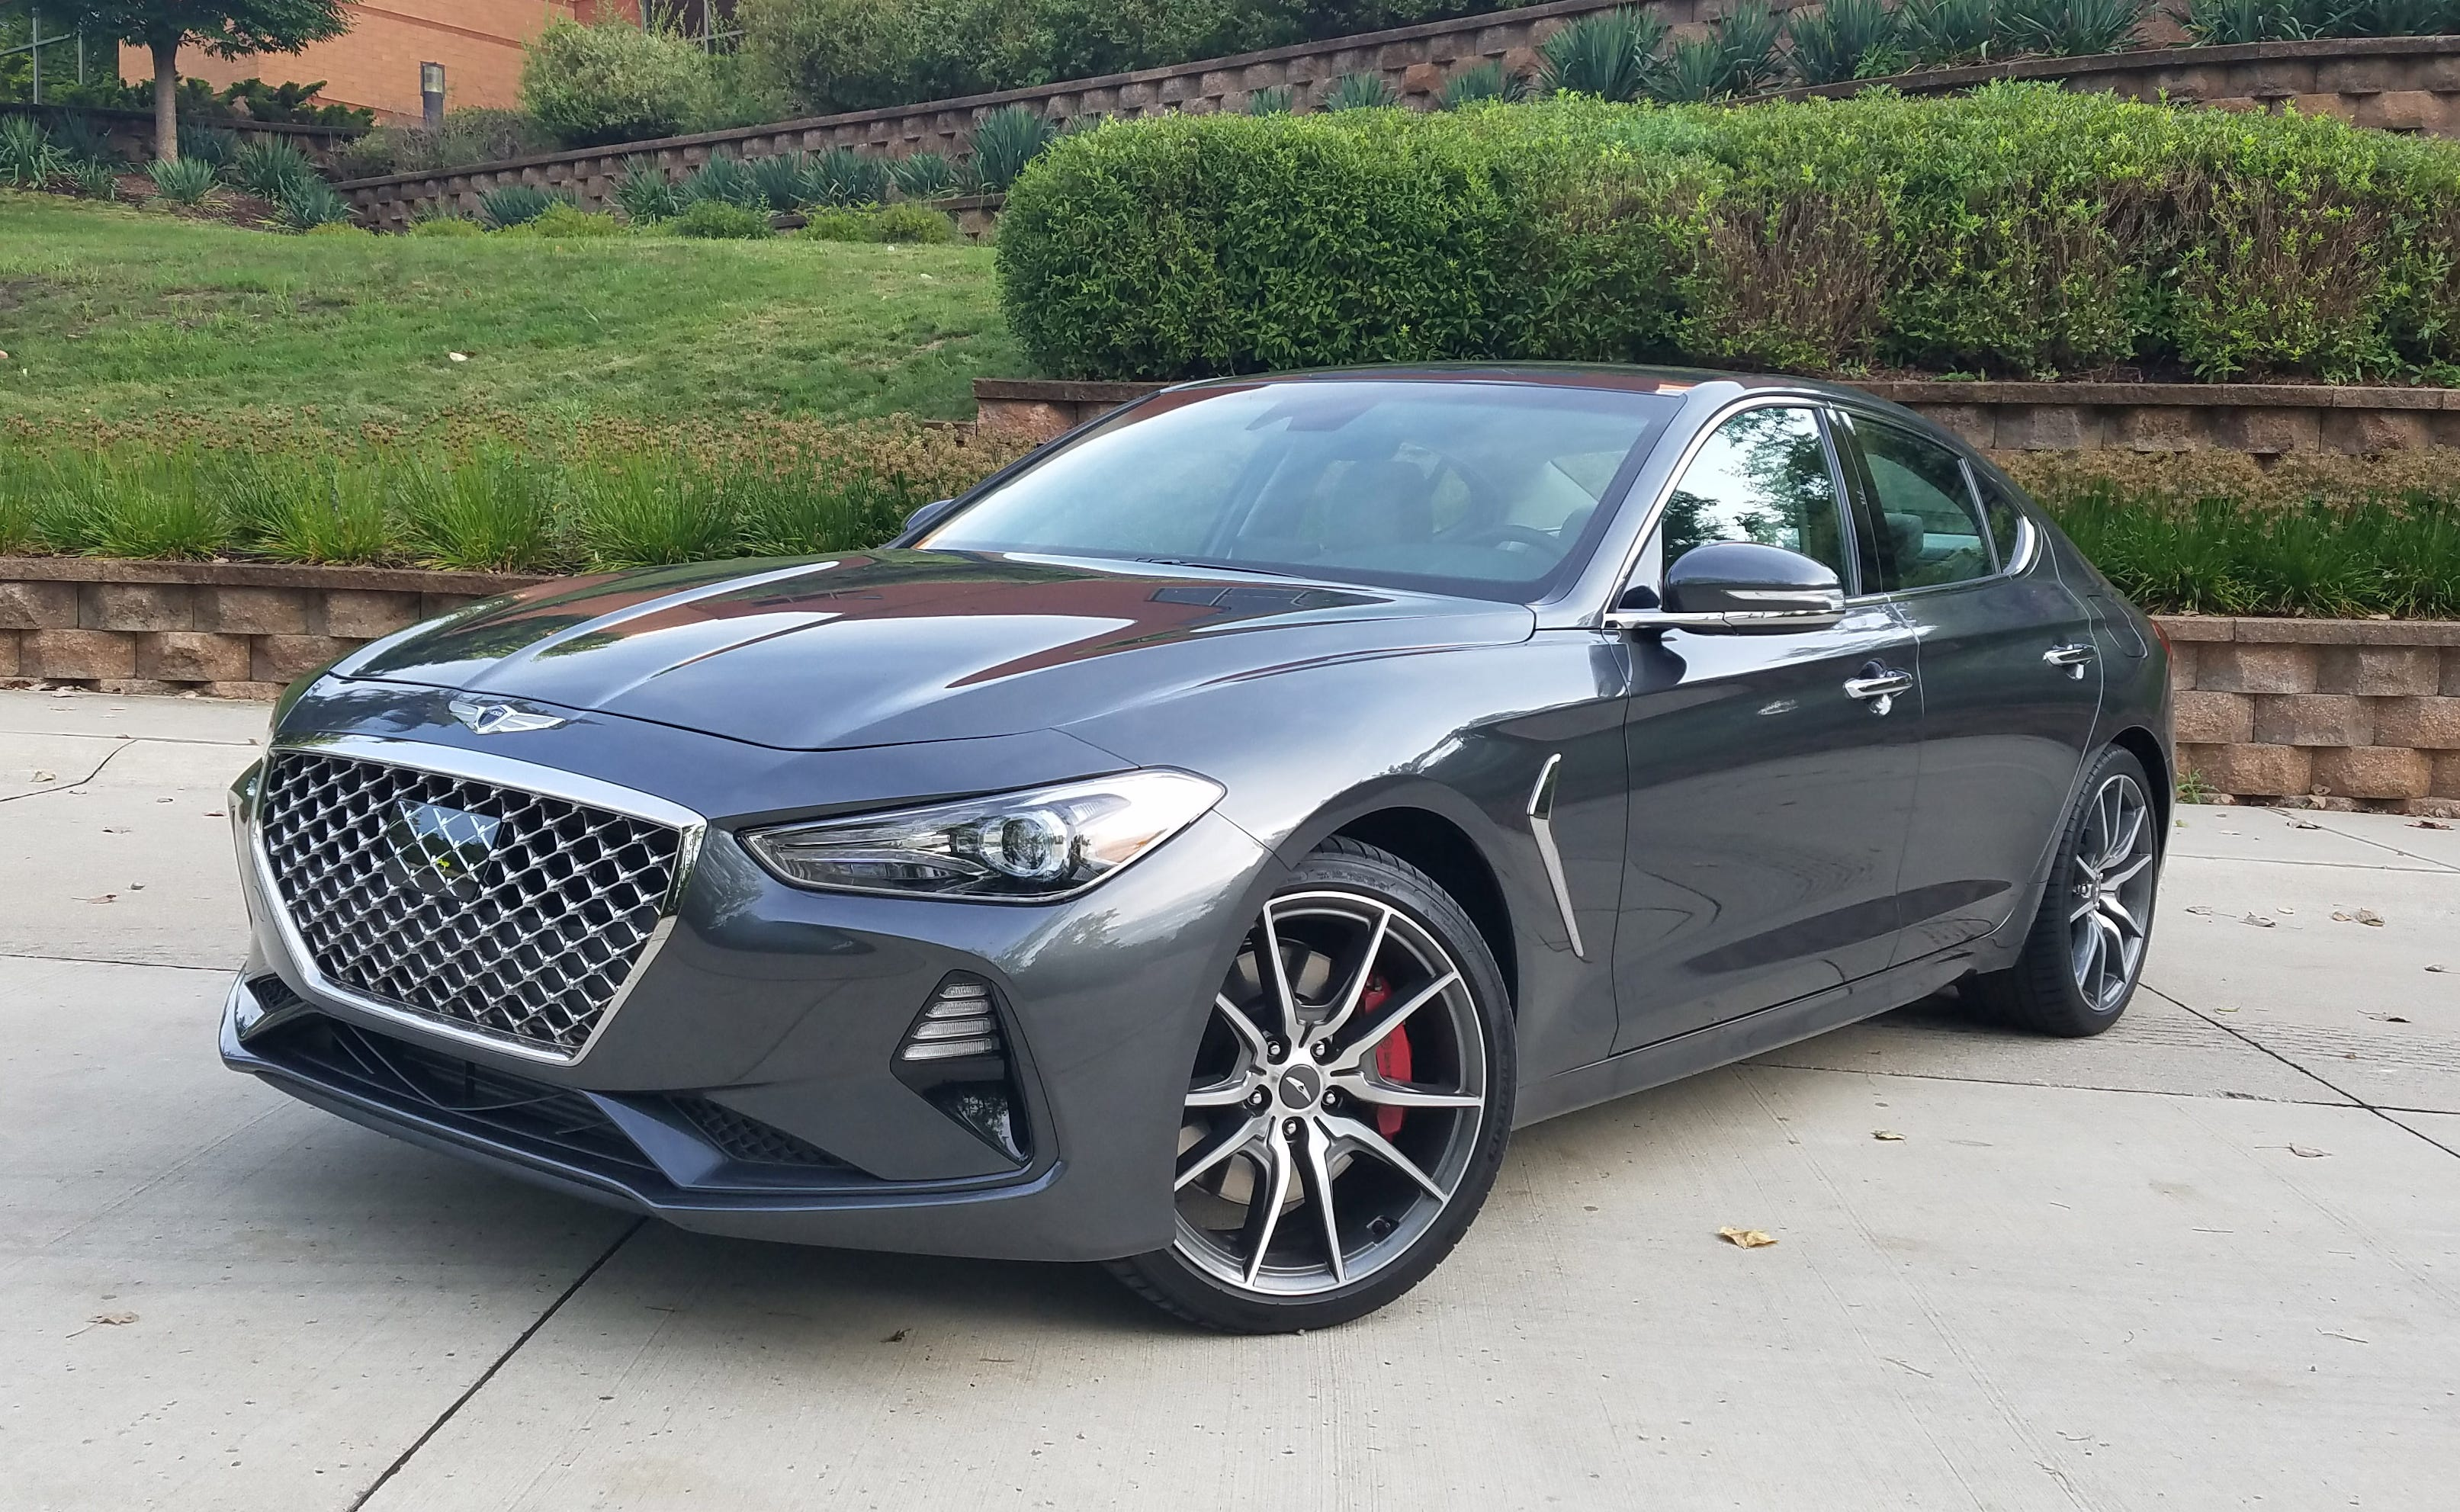 Rivaling the Cadillac ATS and Alfa Romeo Giulia for best-handling car in class, the 2019 Genesis G70 comes in this Sport model with a manual transmission. Too bad there's a dead spot under throttle that spoils the experience.